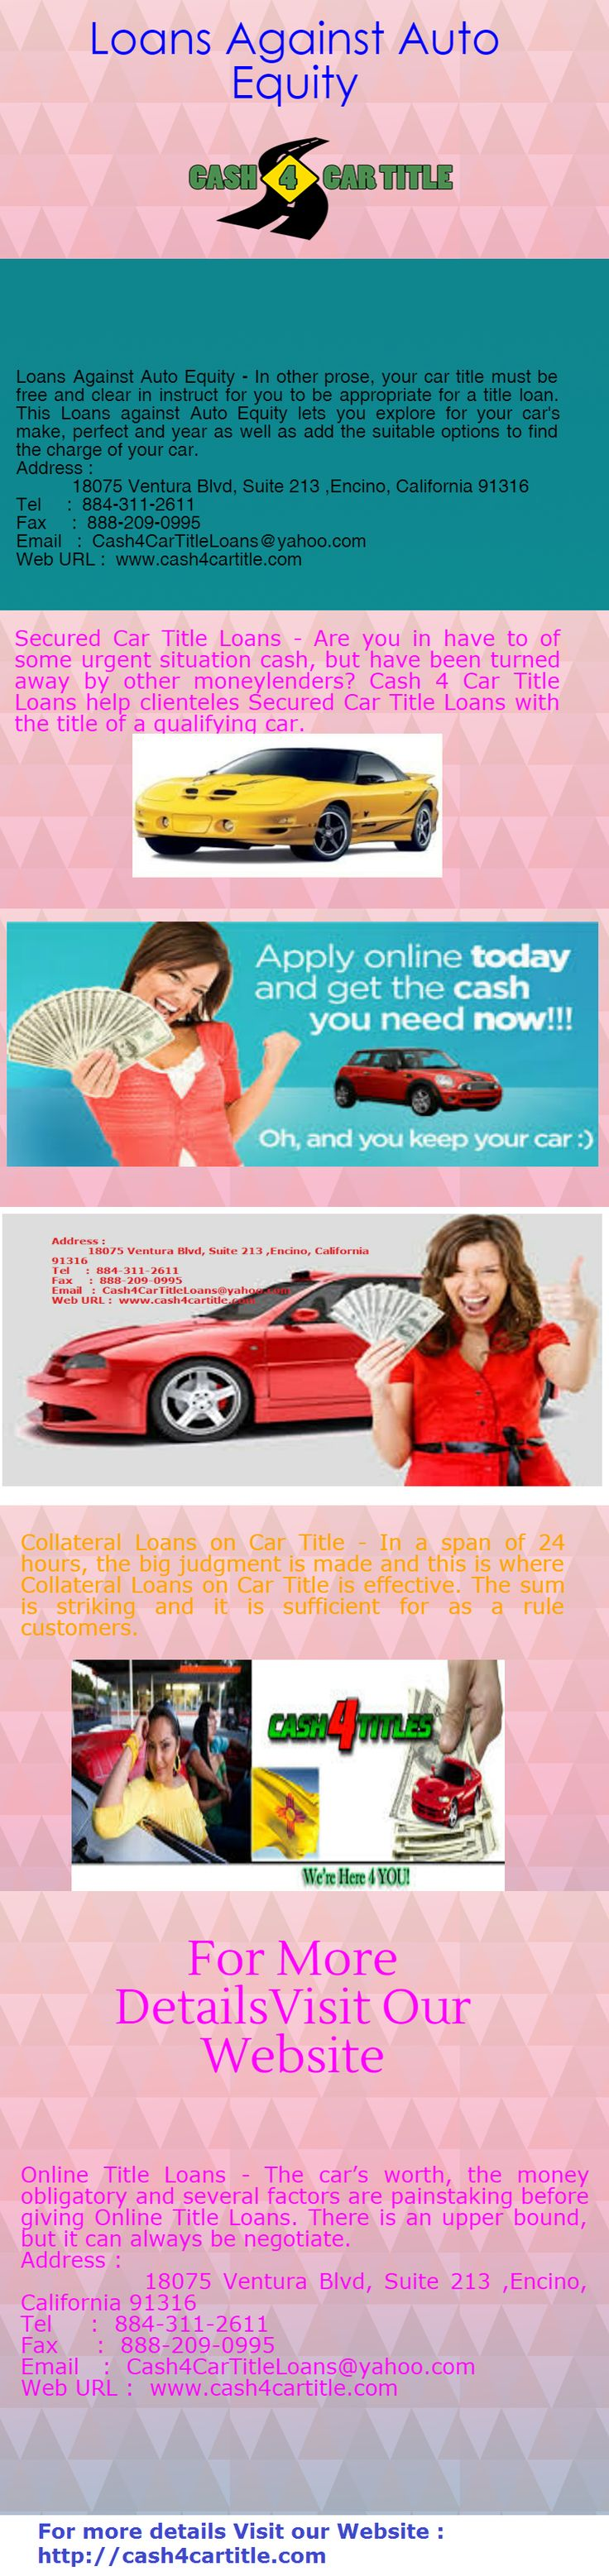 Auto title loans online choose us during an emergency to get cash faster amazing